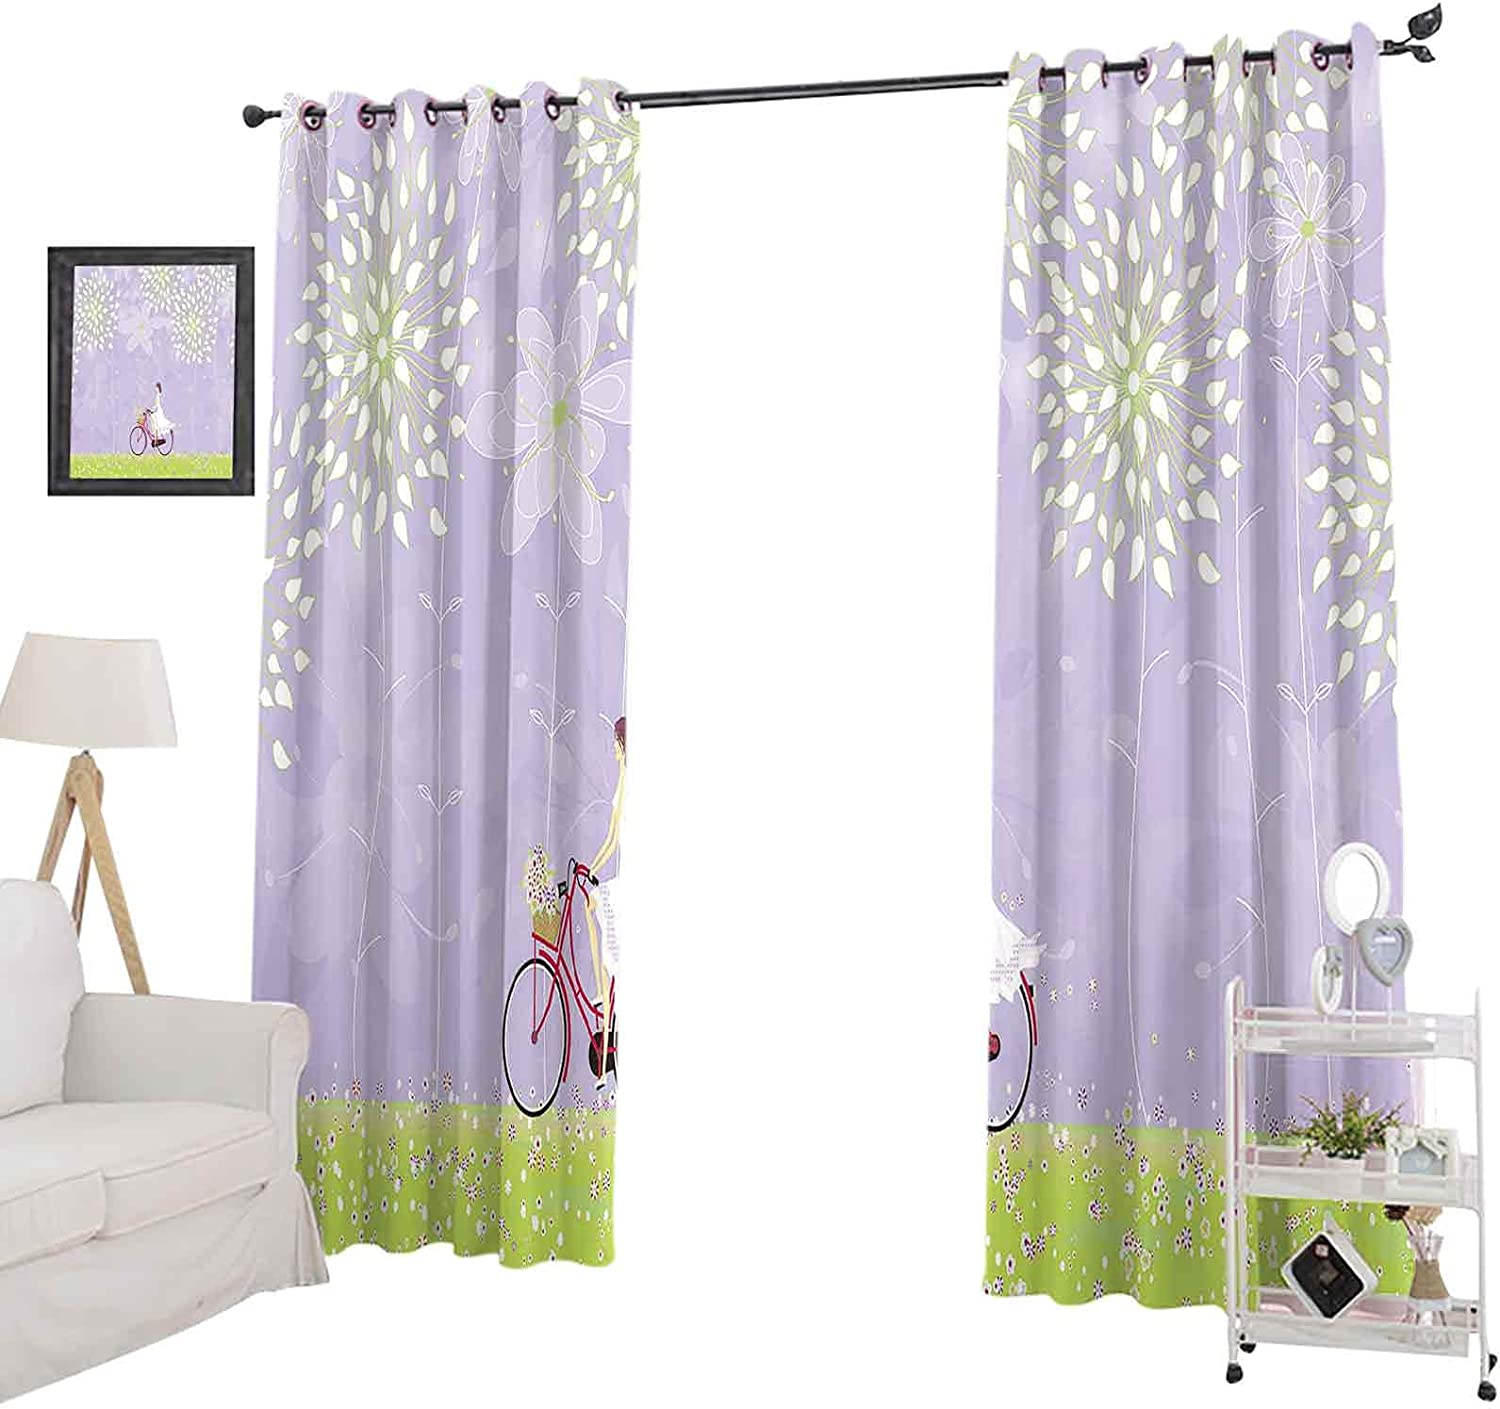 Blackout Curtains for Limited time for free shipping Bedroom 108 Window Inches Pan Cash special price Curtain Long